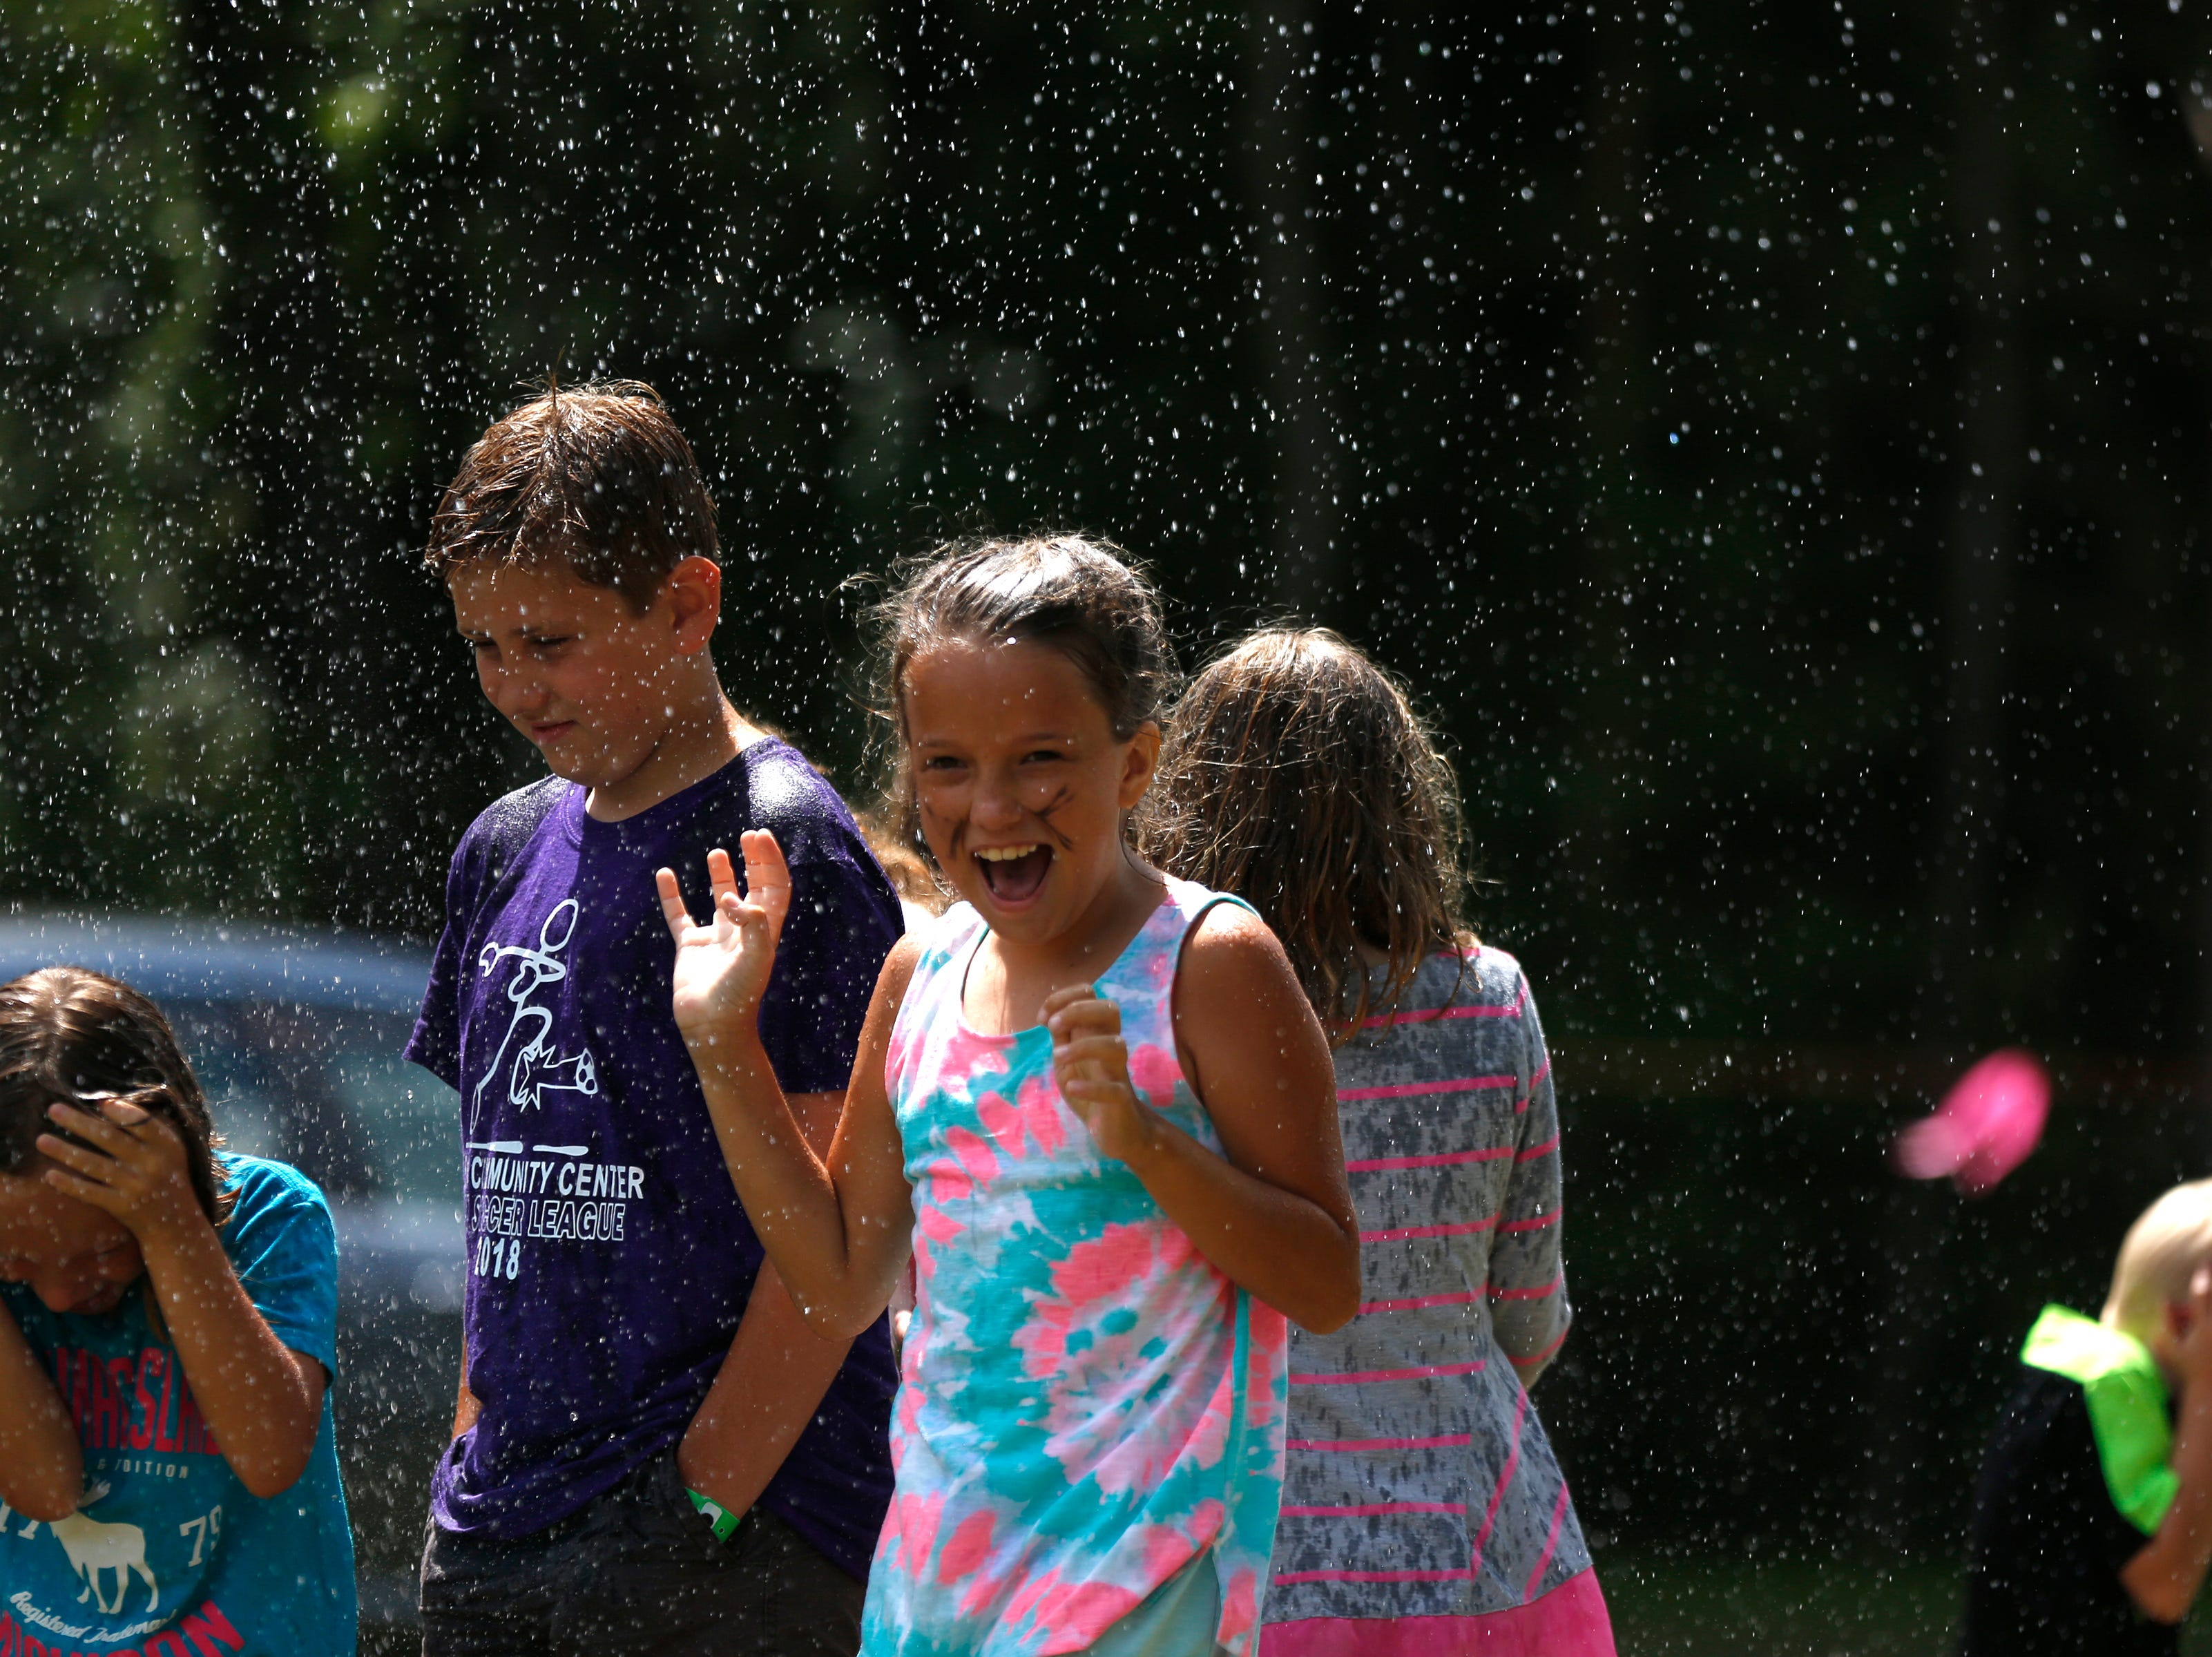 Kids play in water sprayed during the fire department water fights during Celebrate Plover at Lake Pacawa Park in Plover, Wis., July 28, 2018.